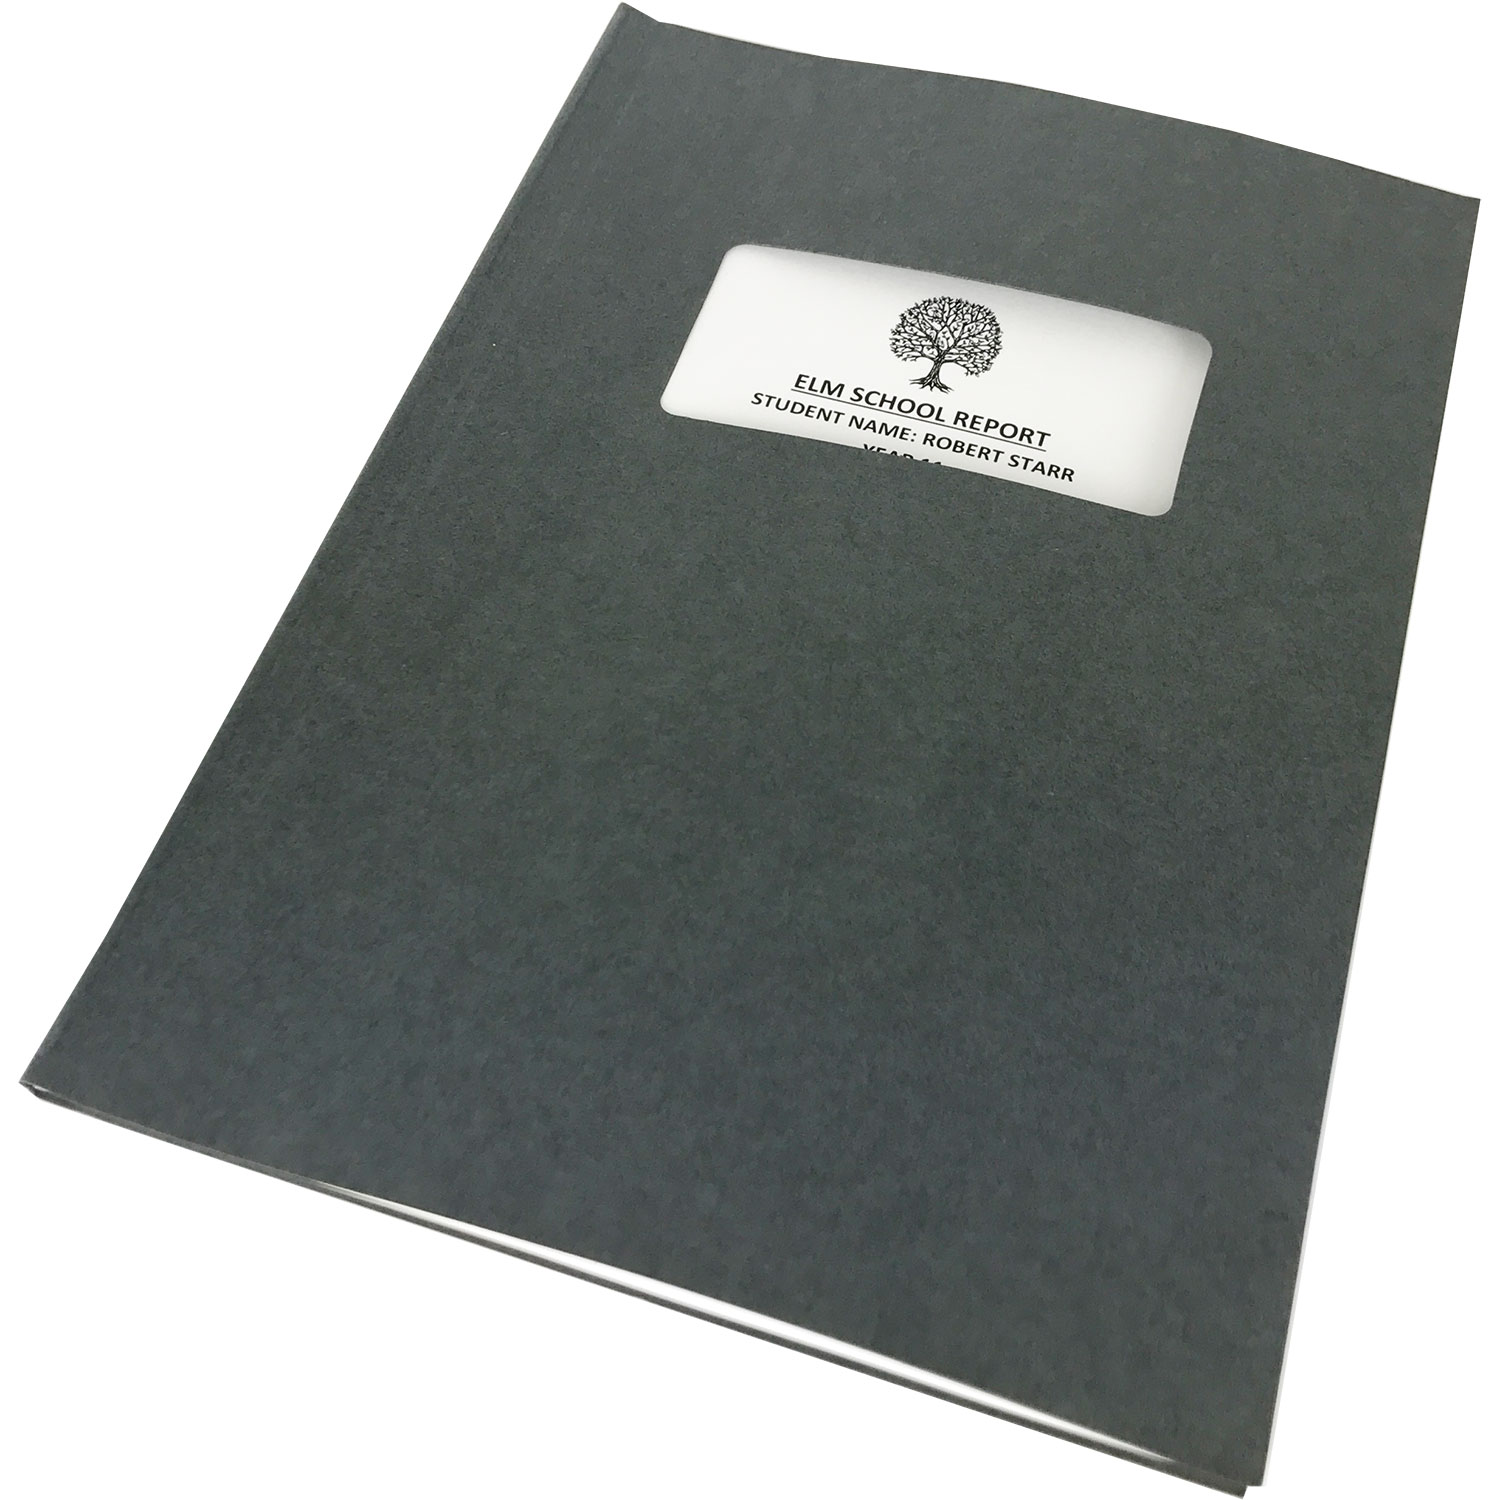 Channelbind A4 Soft-Window Cut-Out Binding Covers - Grey